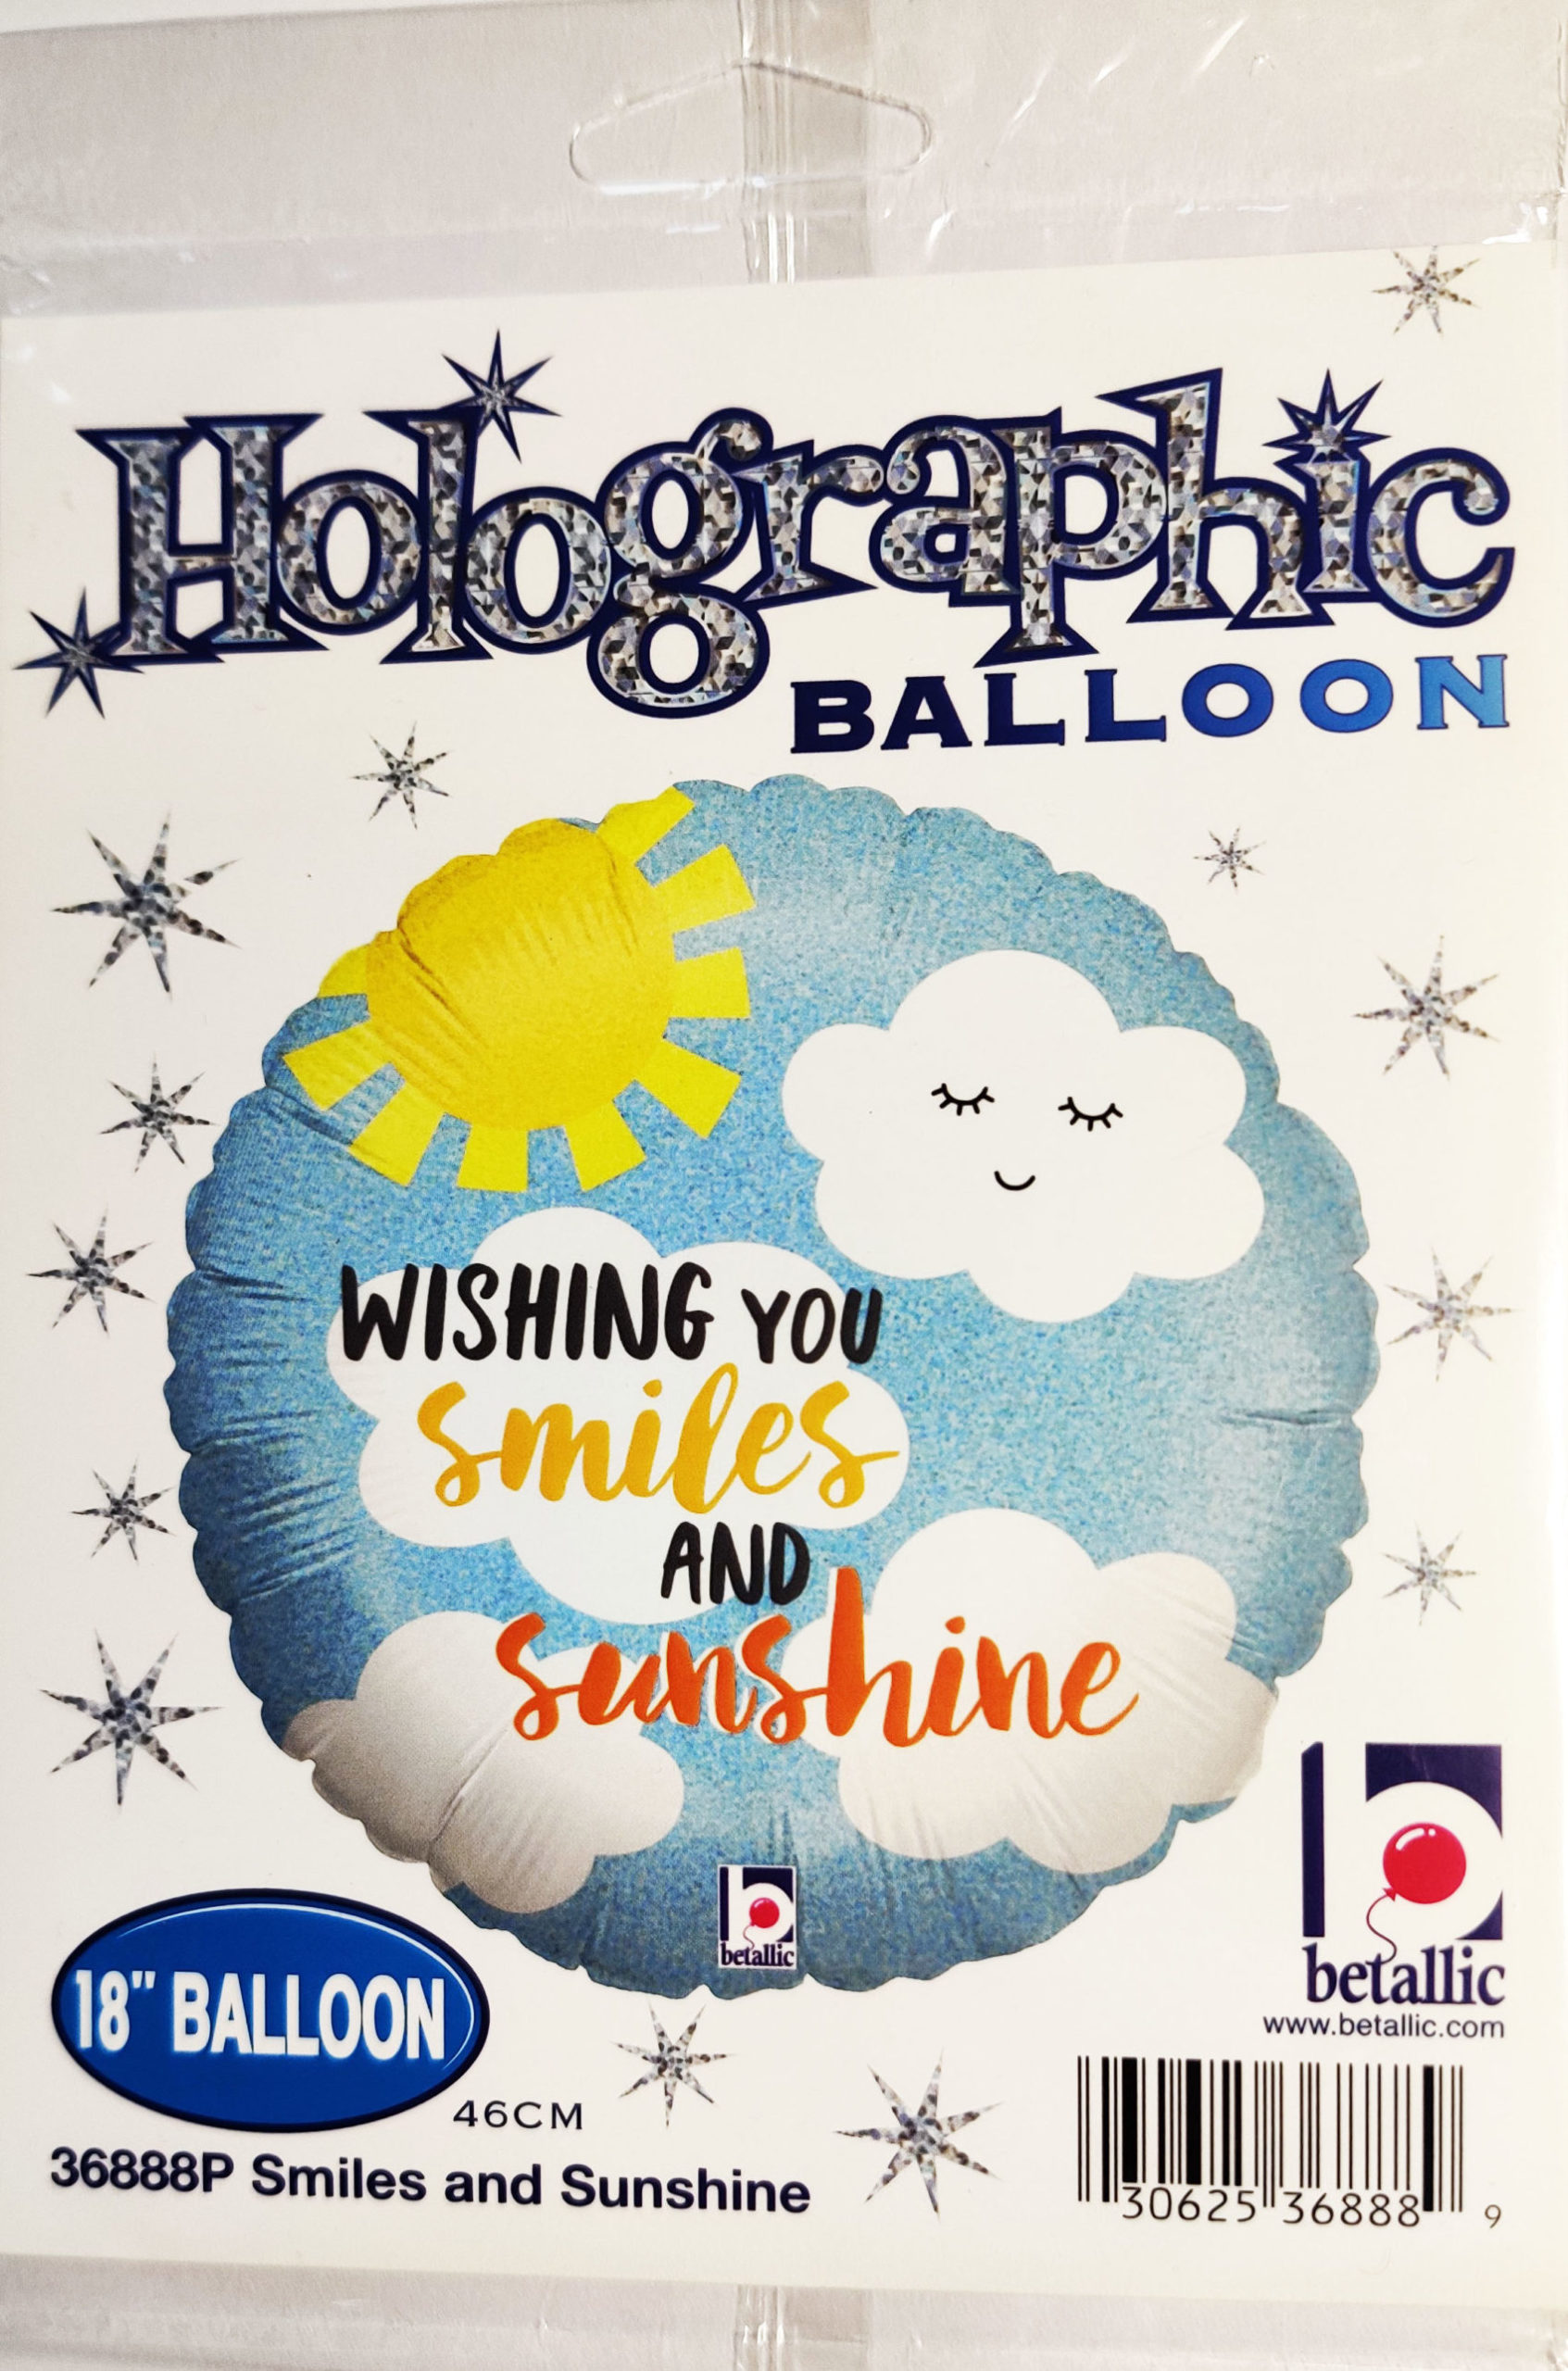 Wishing you smiles and sunshine 18inch Foil Balloon Multi Coloured 36888P